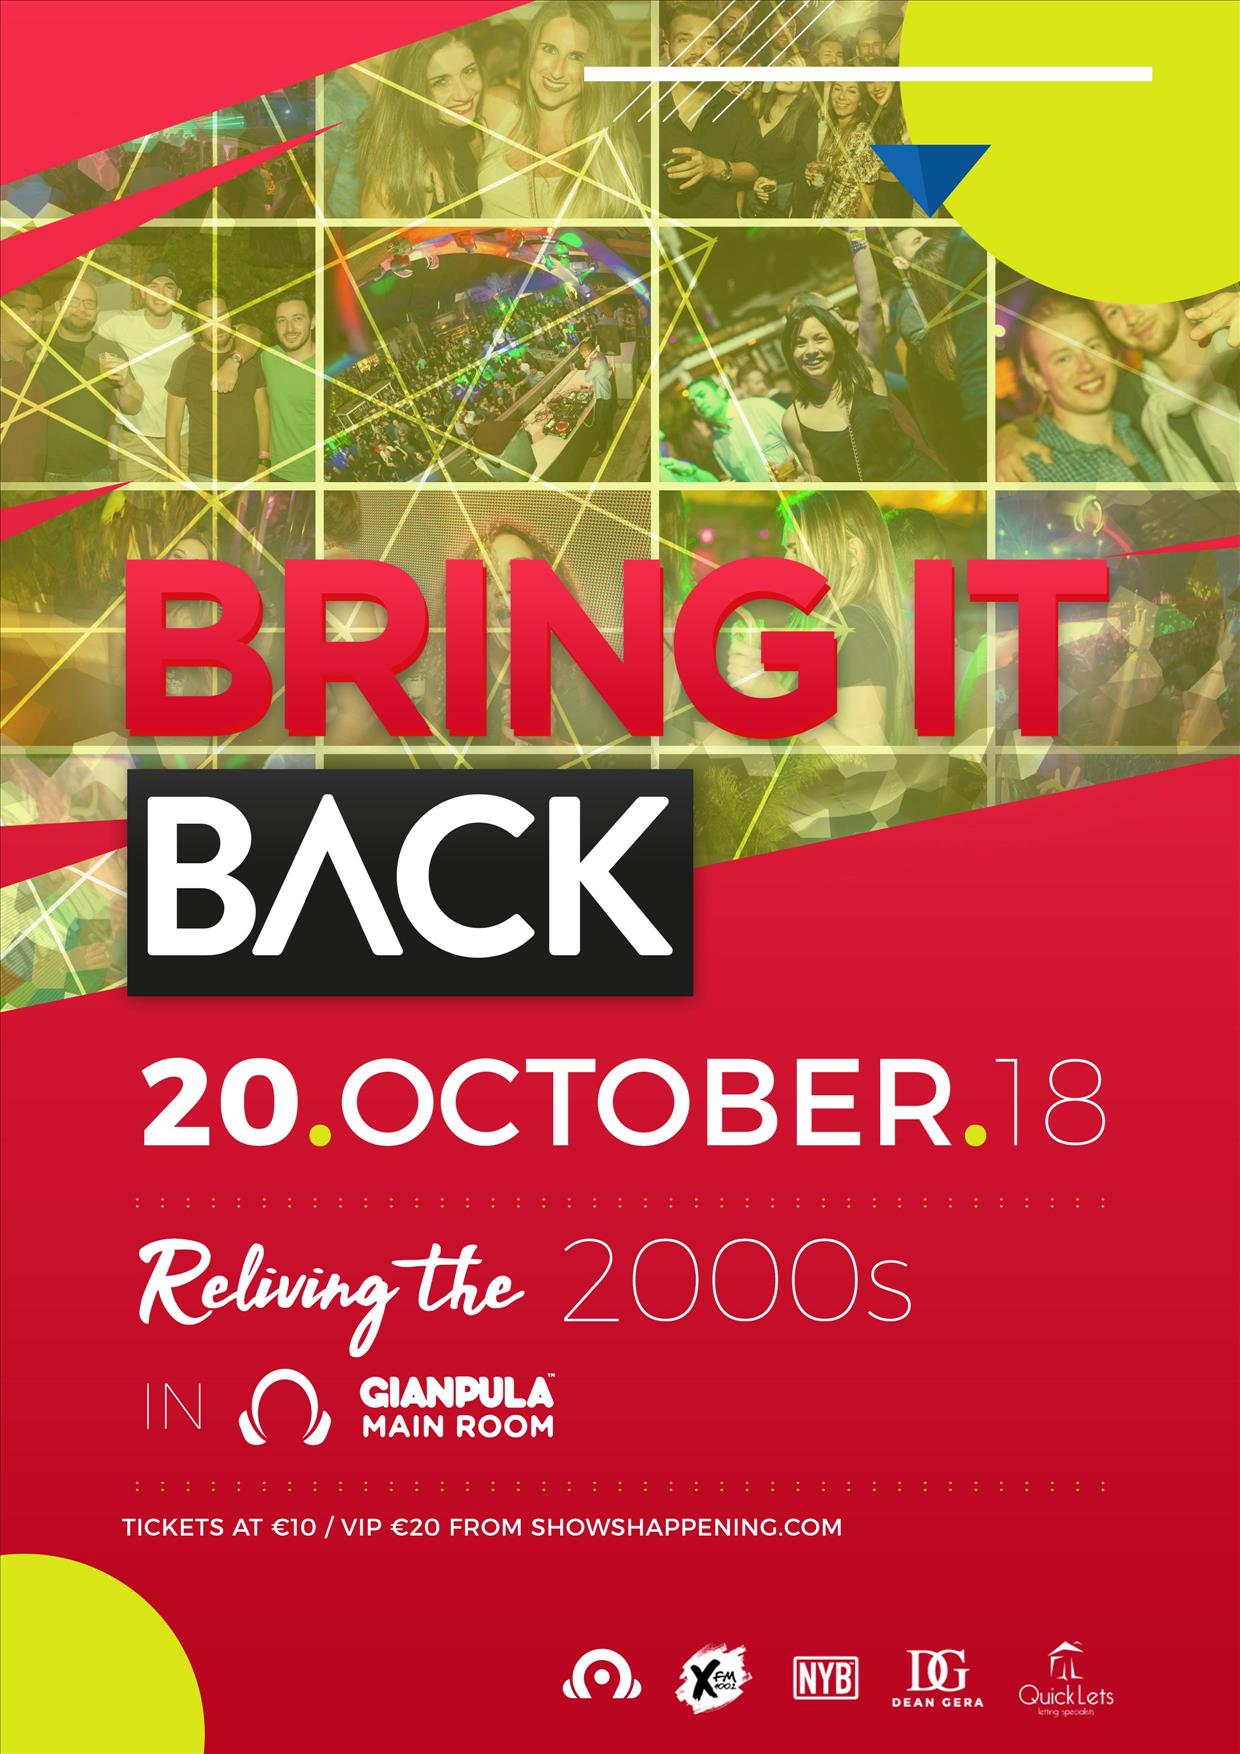 Bring It Back - Reliving The 2000s flyer